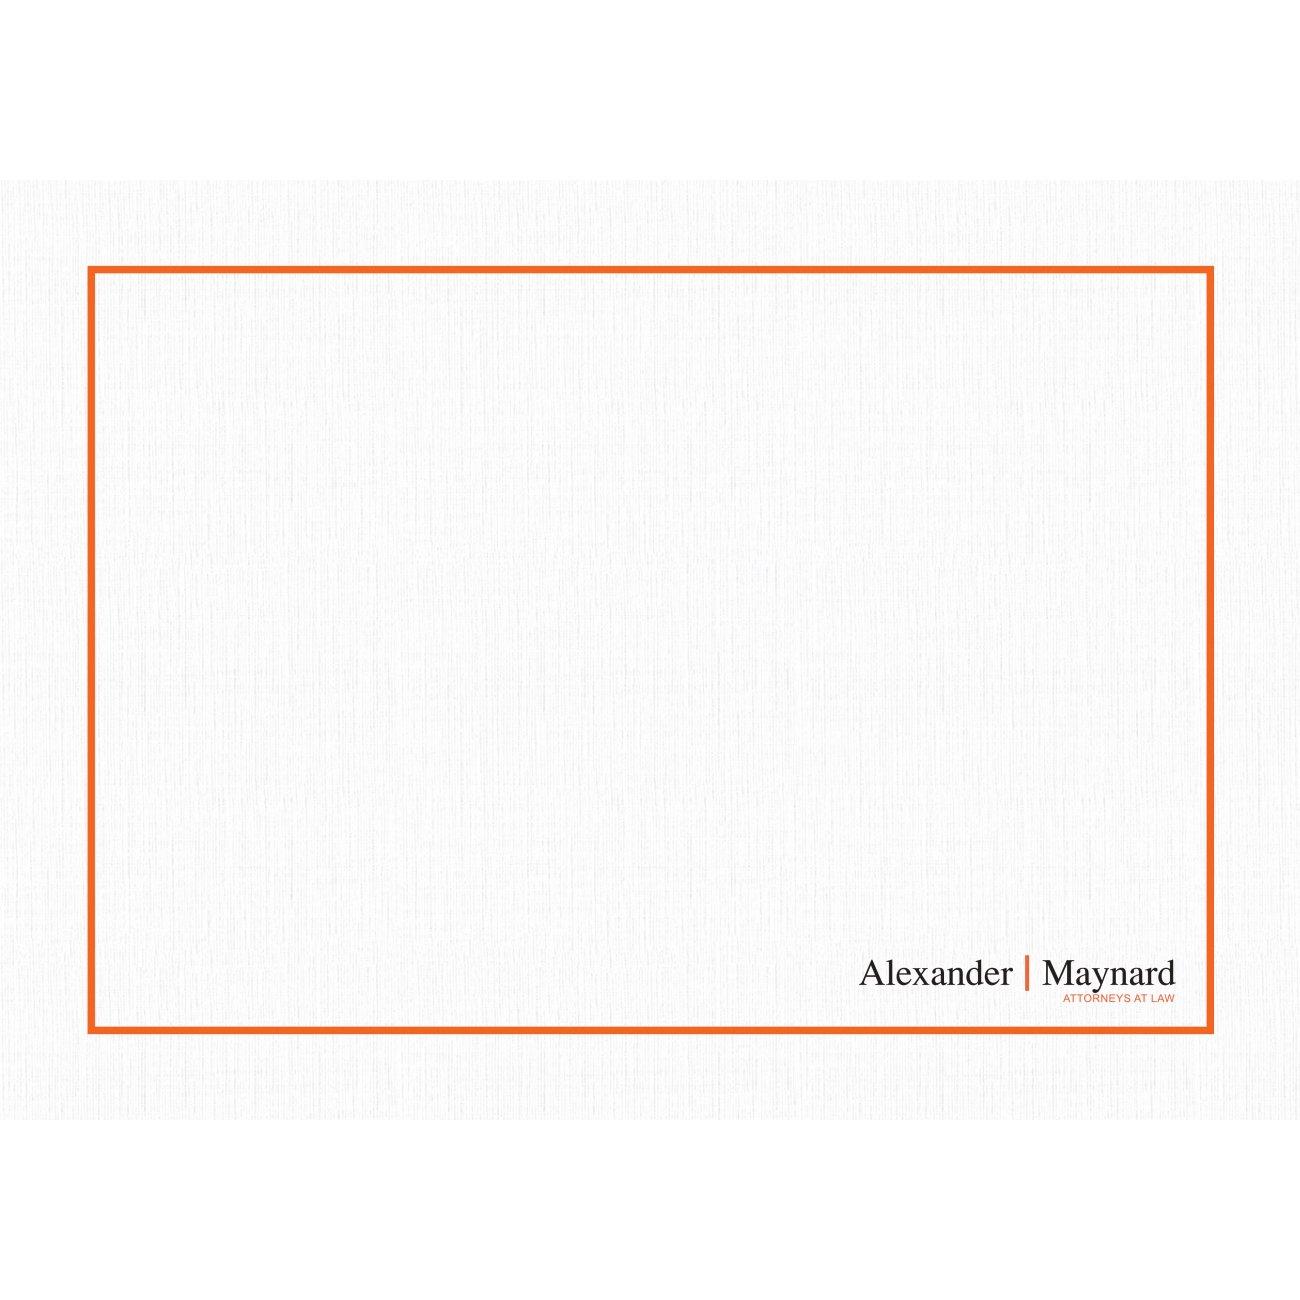 "Paper Placemats - 17"" x 11"" - Smooth Blank - 11"" x 17"", 80 lb. Neenah Environment Text, Smooth Finish Placemat, Ultra Bright White, Min Qty 100/BX, Increments of 50/EA"